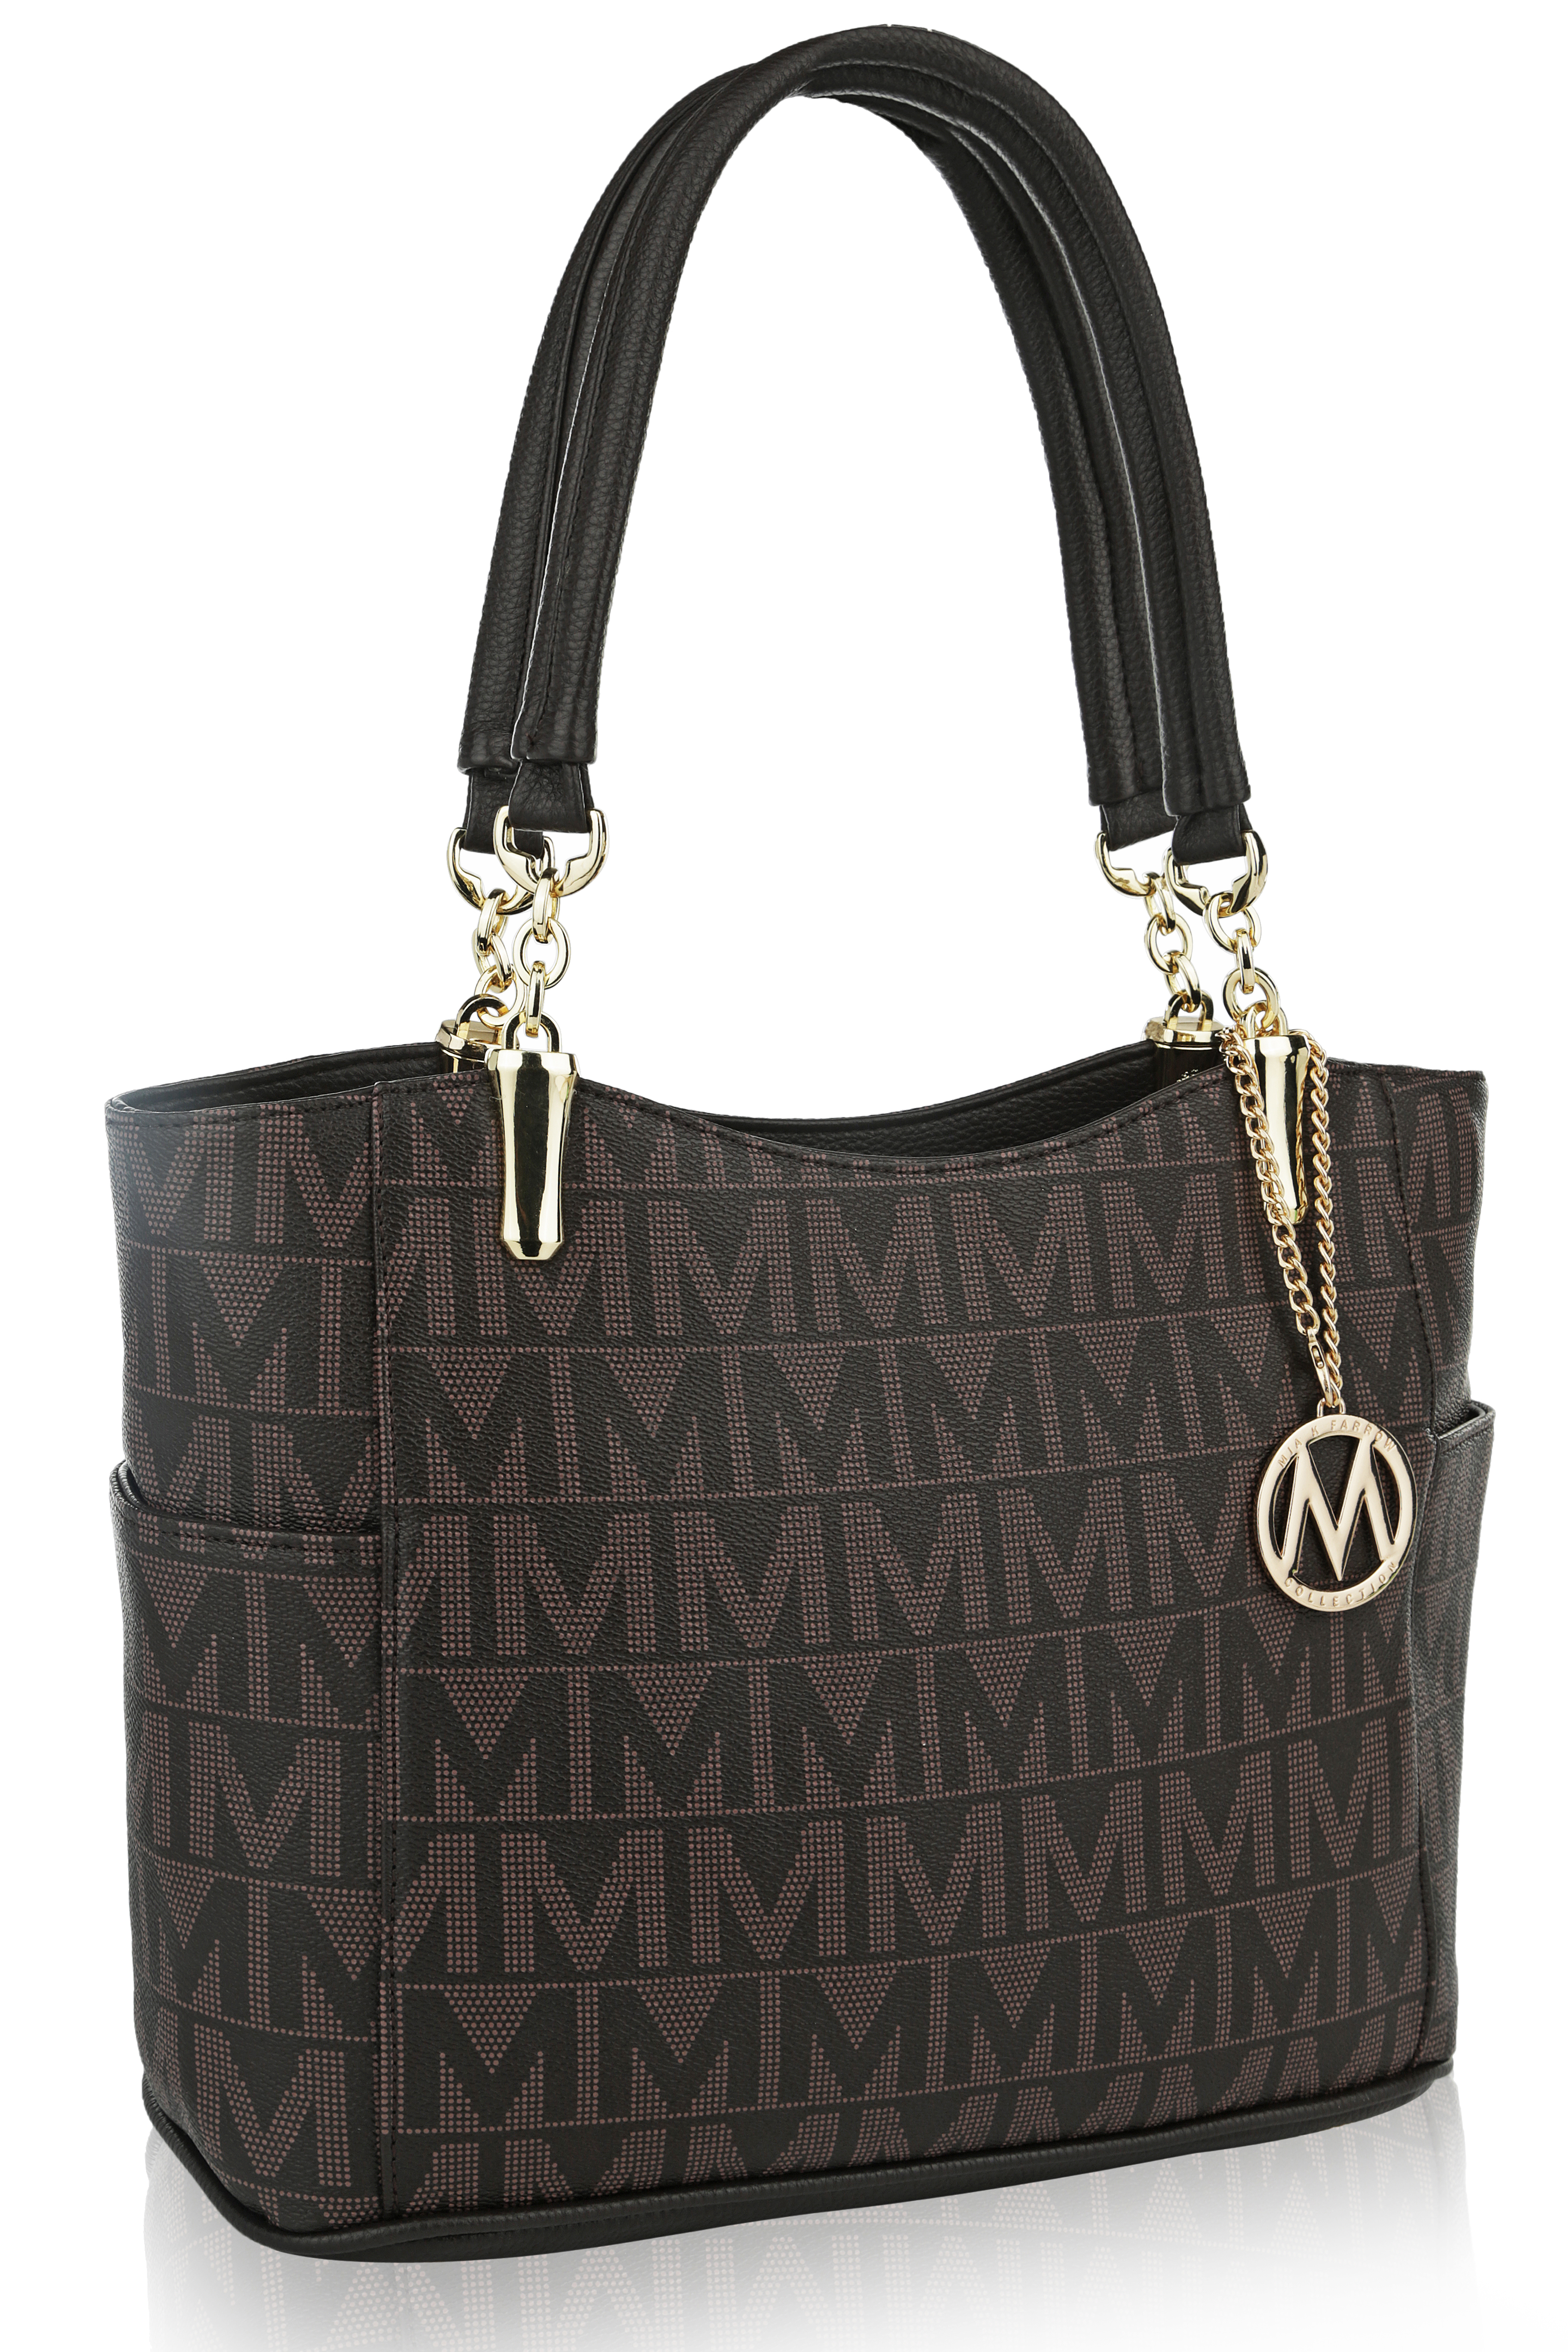 MKF Collection Braylee M Signature Tote by Mia K. Farrow